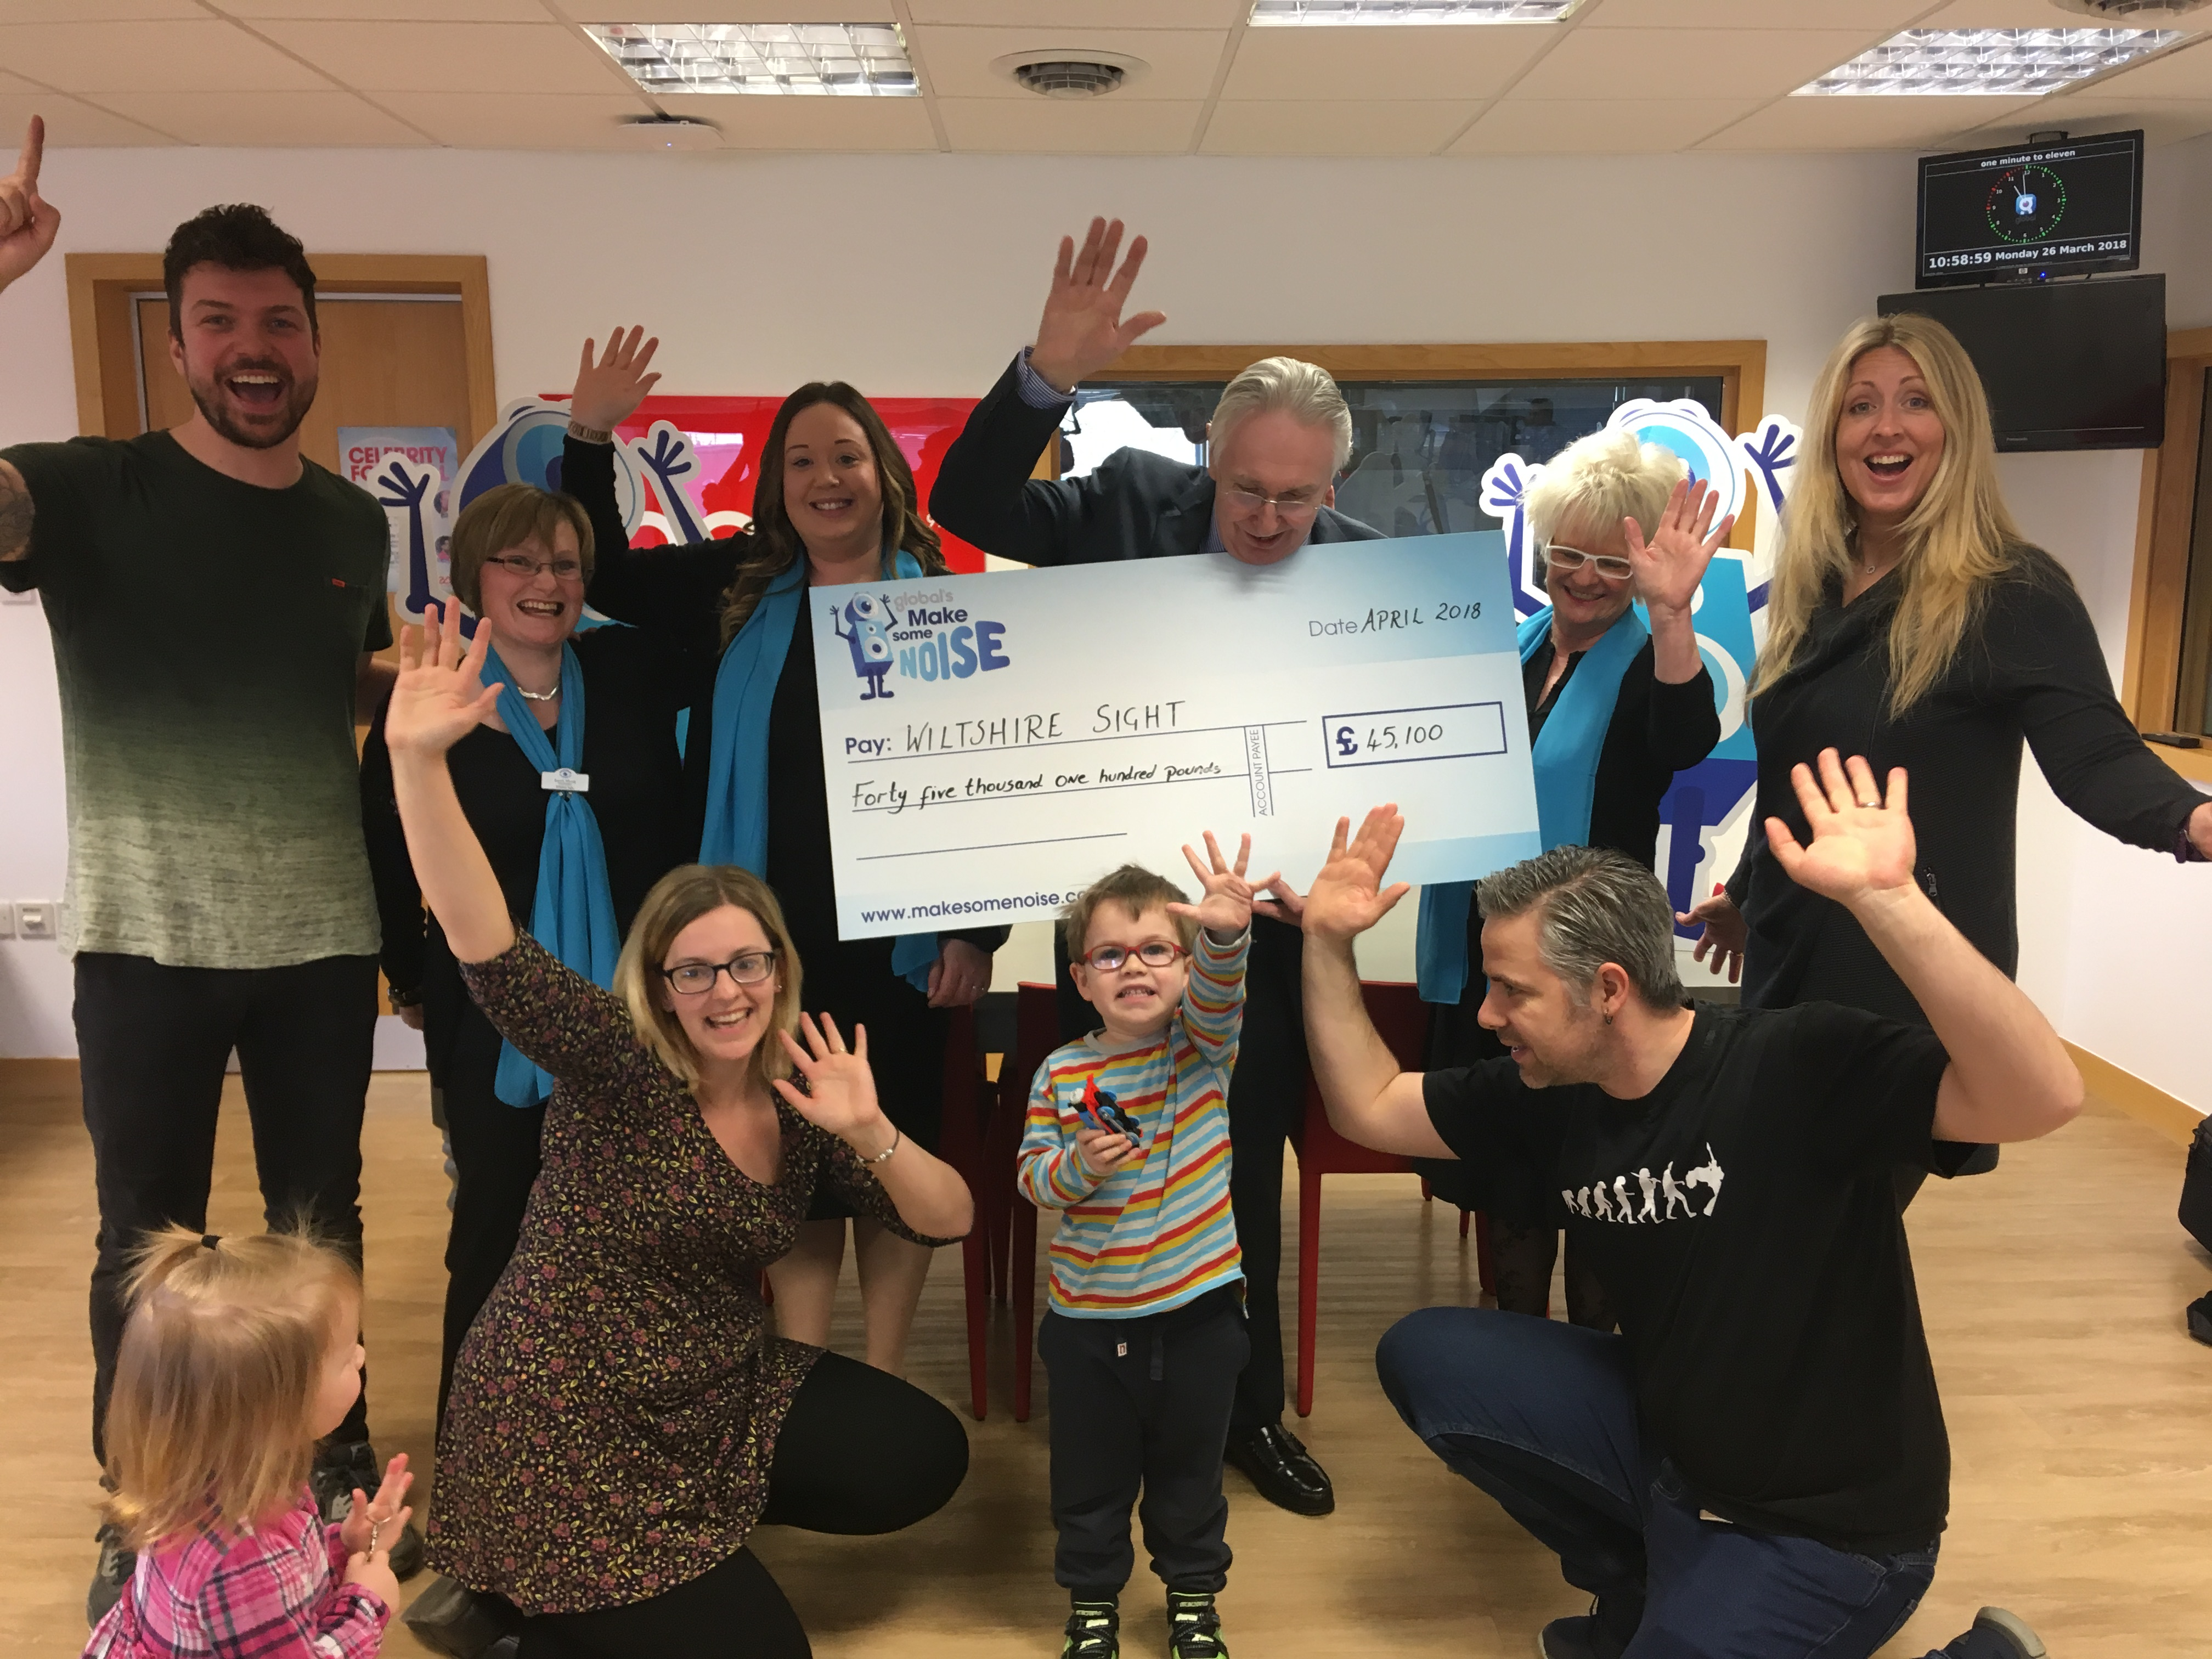 Wiltshire Sight GMSN Cheque Reveal 2018